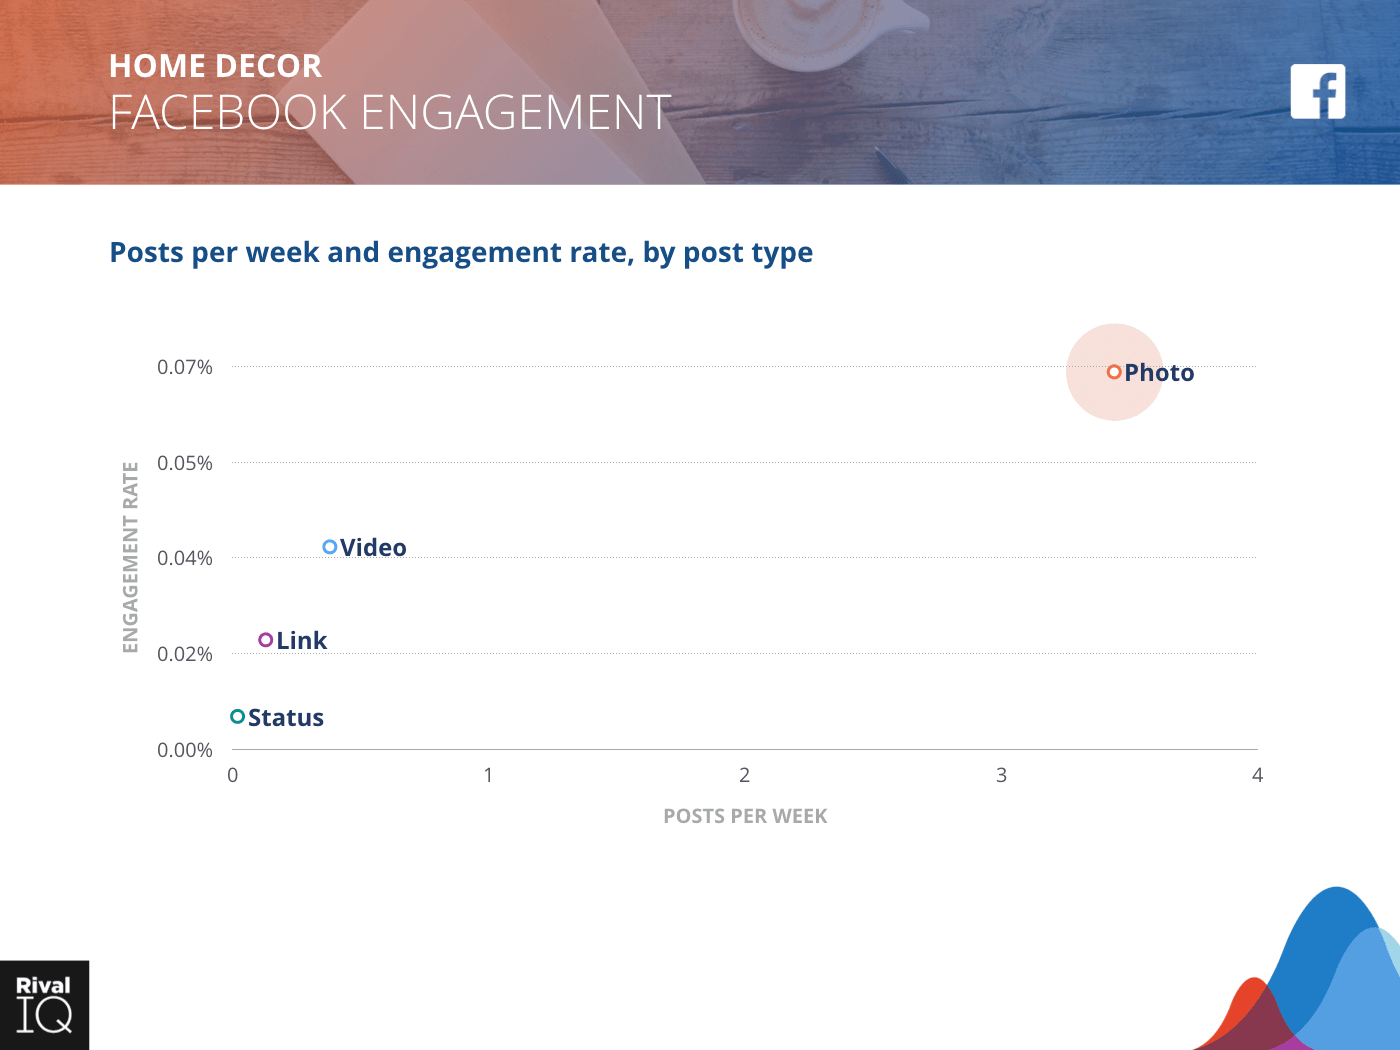 Home Decor Industry: scatter graph, average post per week by type and engagement rate on Facebook